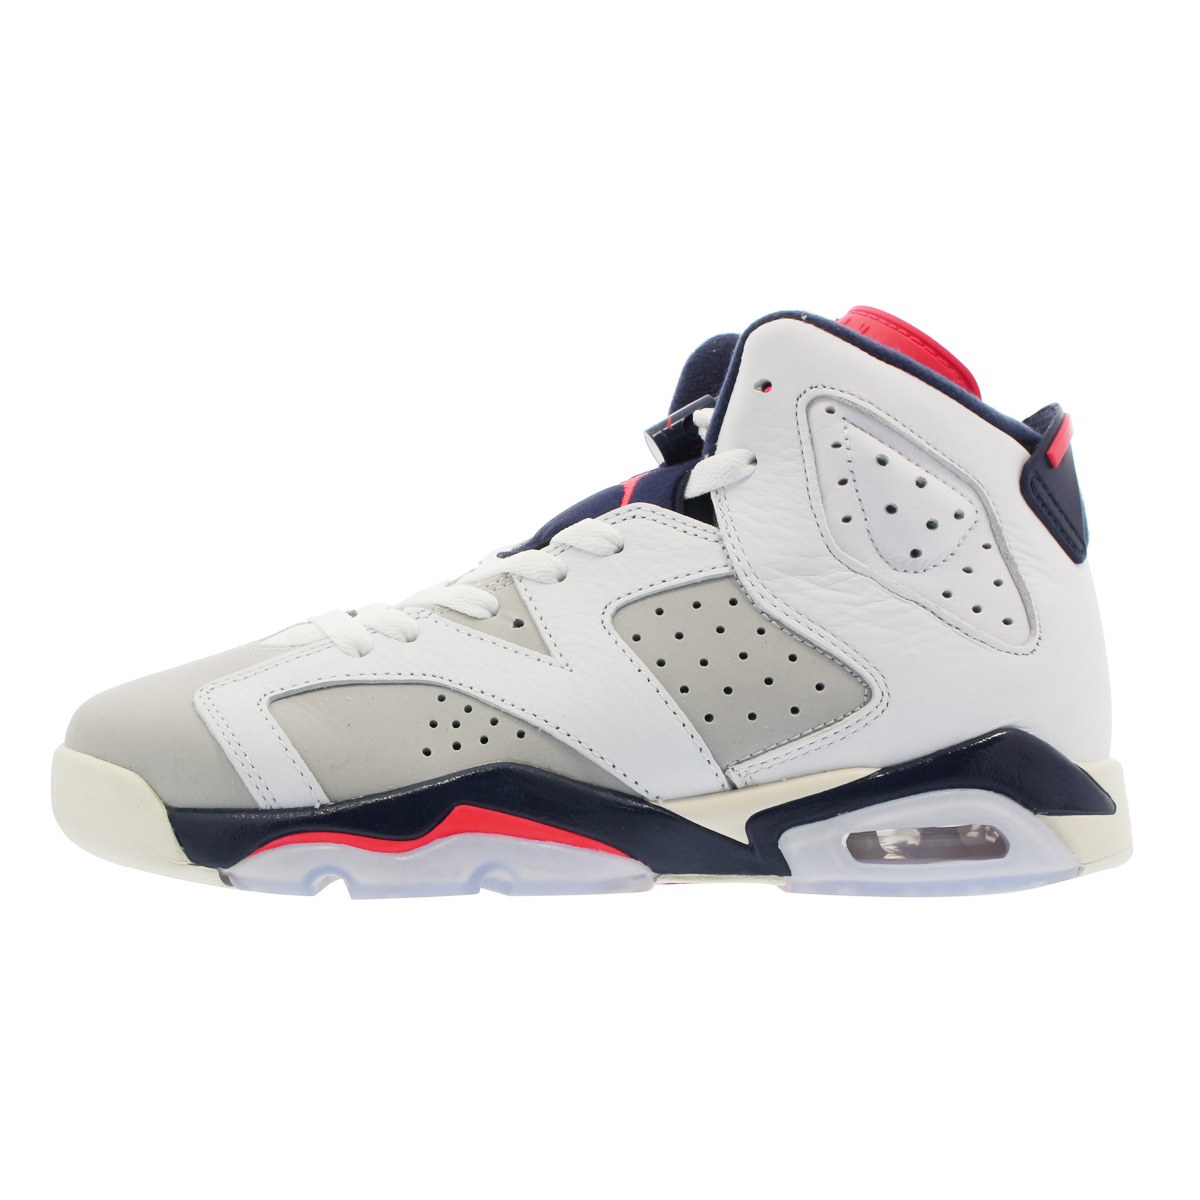 NIKE AIR JORDAN 6 RETRO BG 【TINKER HATFIELD】 ナイキ エア ジョーダン 6 レトロ BG WHITE/INFRARED 23/GREY/SAIL 384665-104